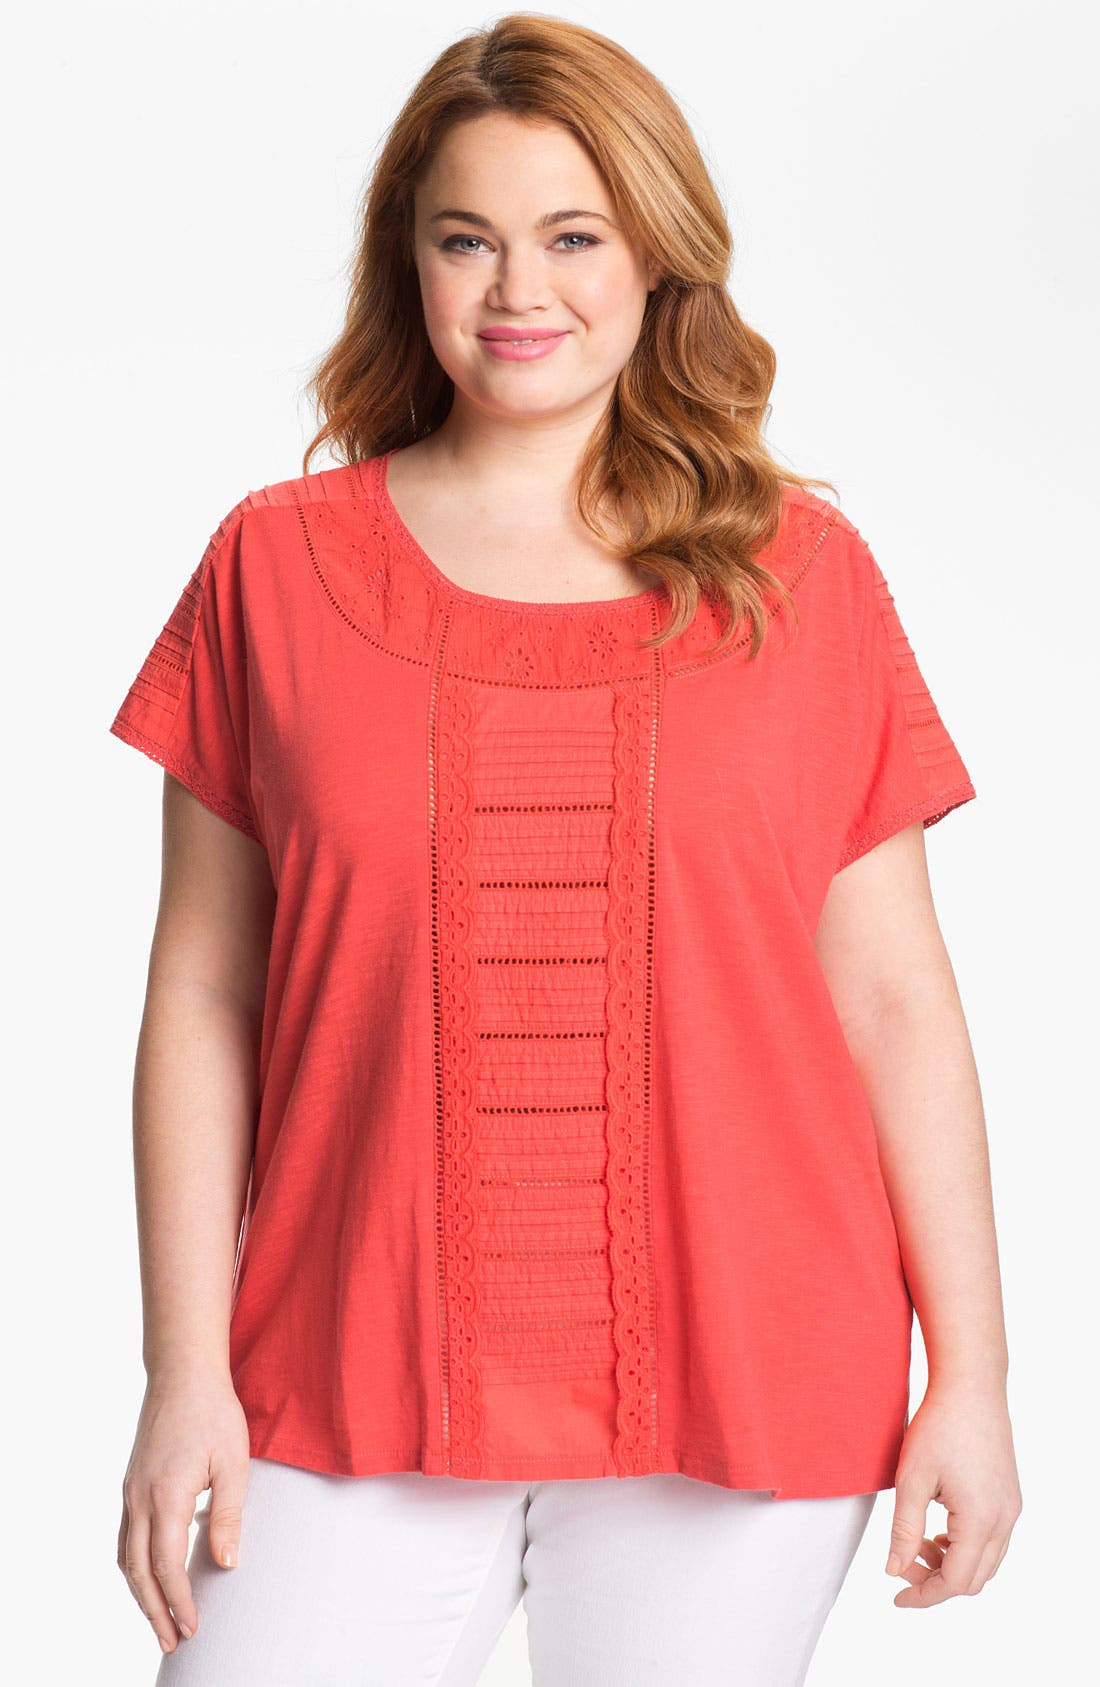 Alternate Image 1 Selected - Lucky Brand 'Alice' Cutout Cotton Top (Plus Size)